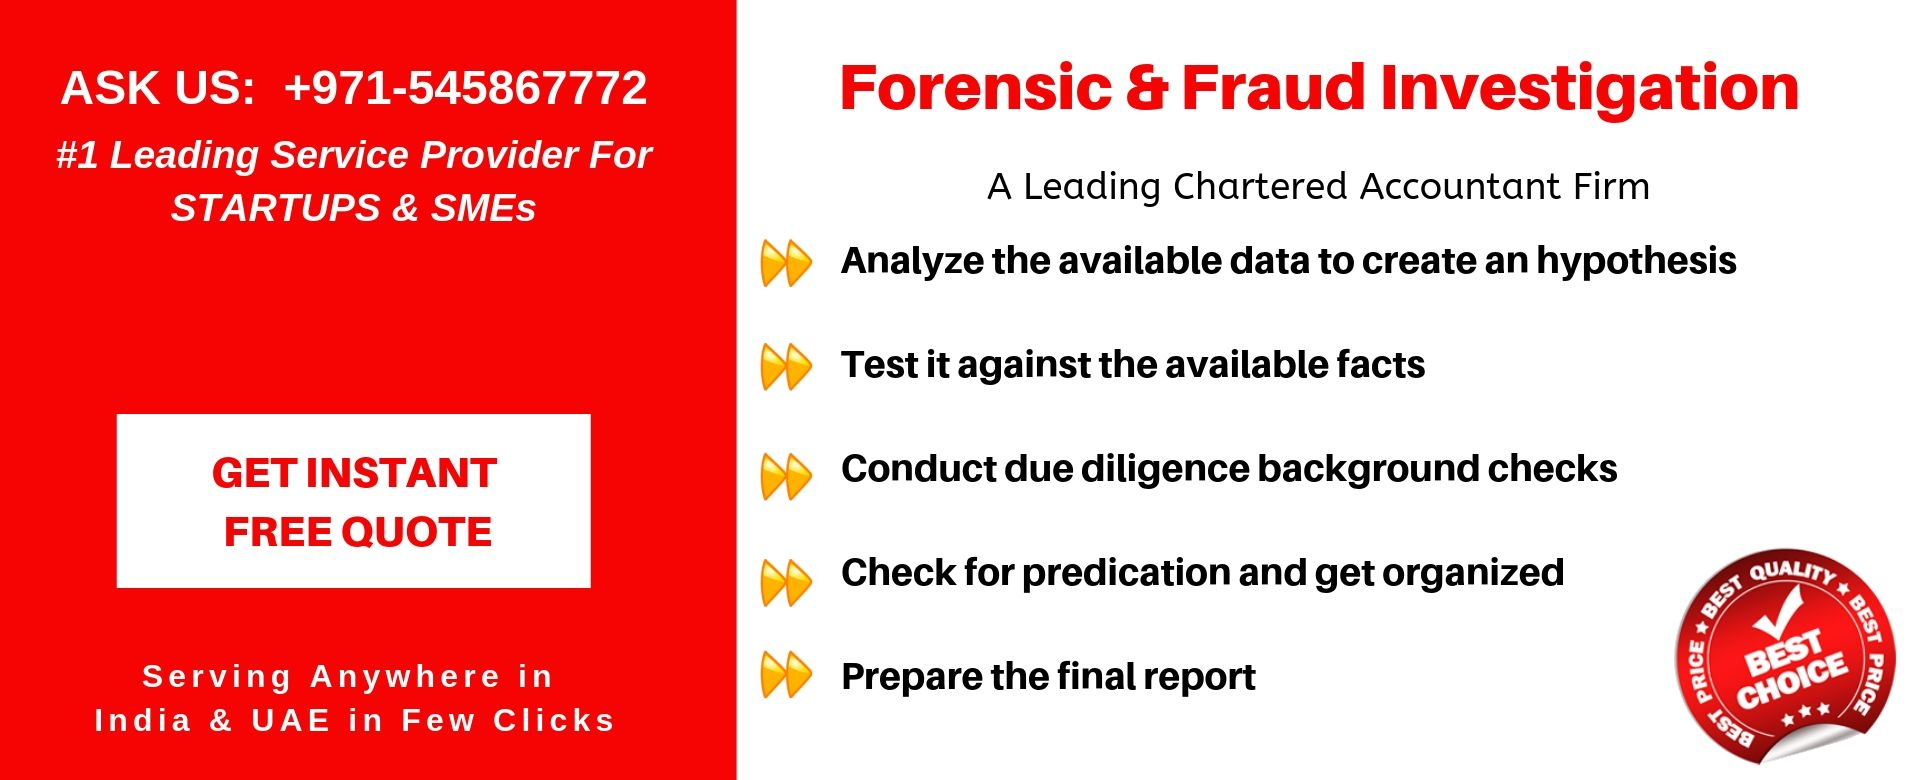 forensic fraud investigation in uae